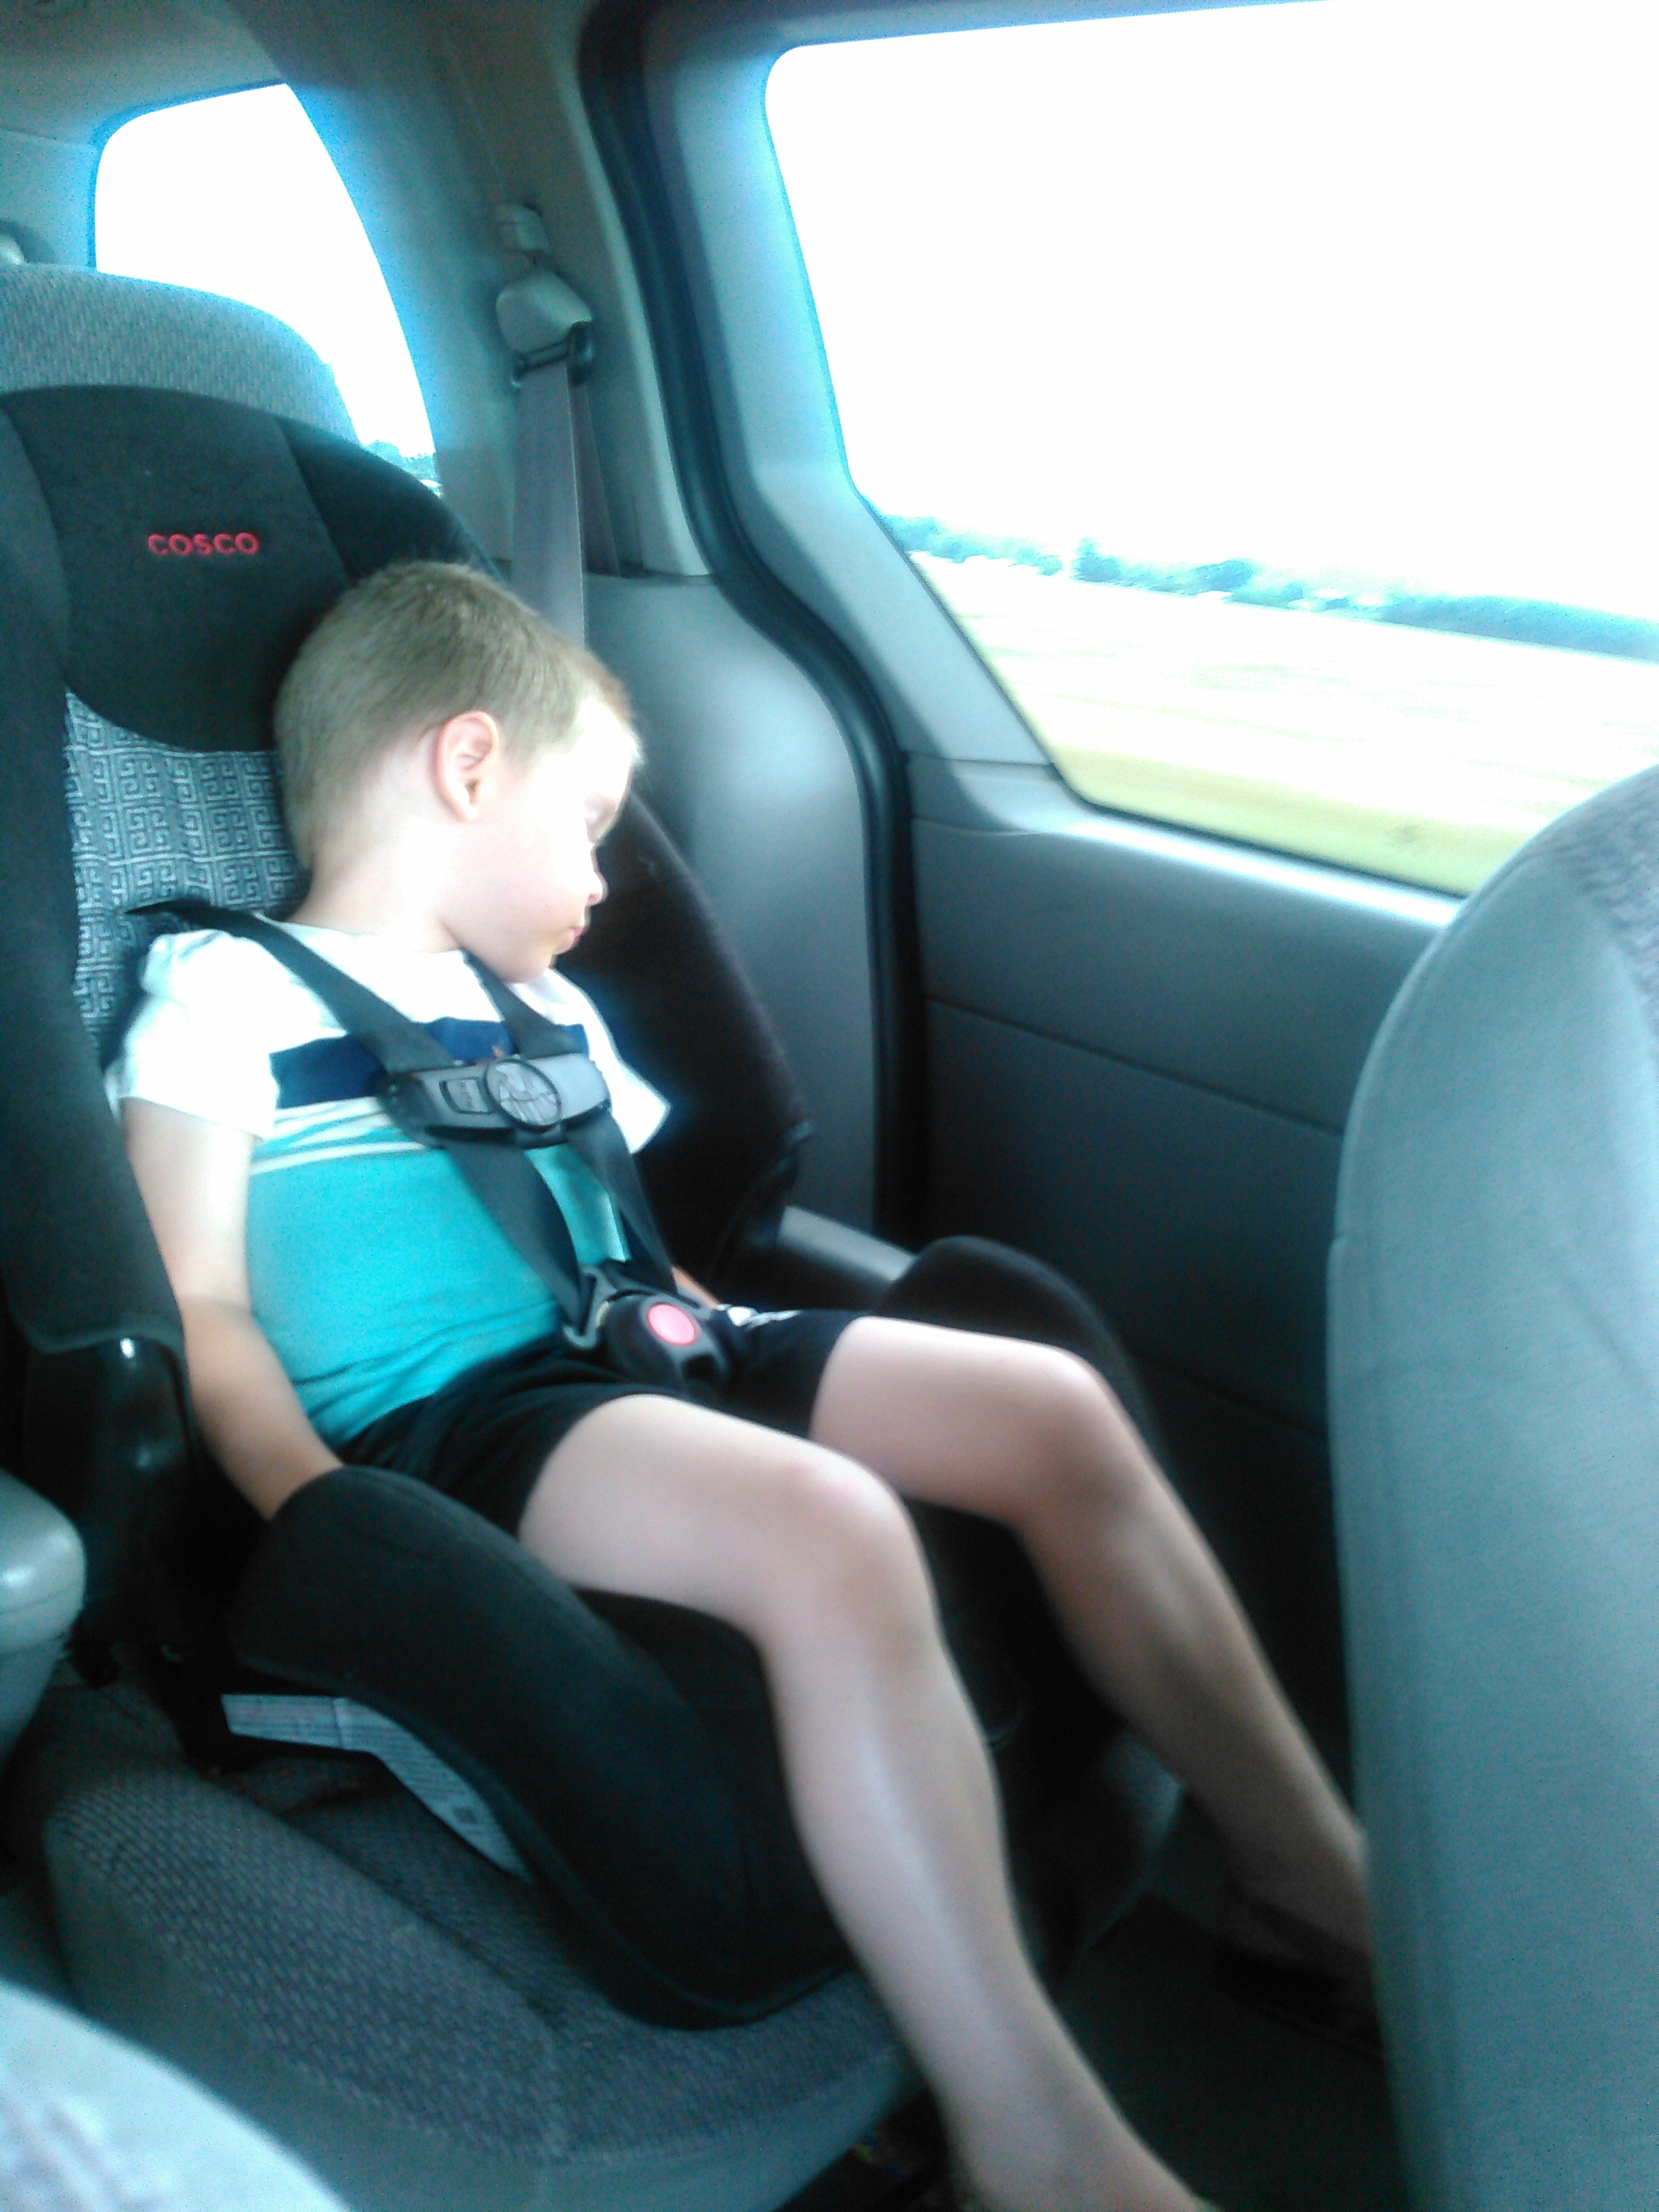 Too tired to make it all the way home without a nap